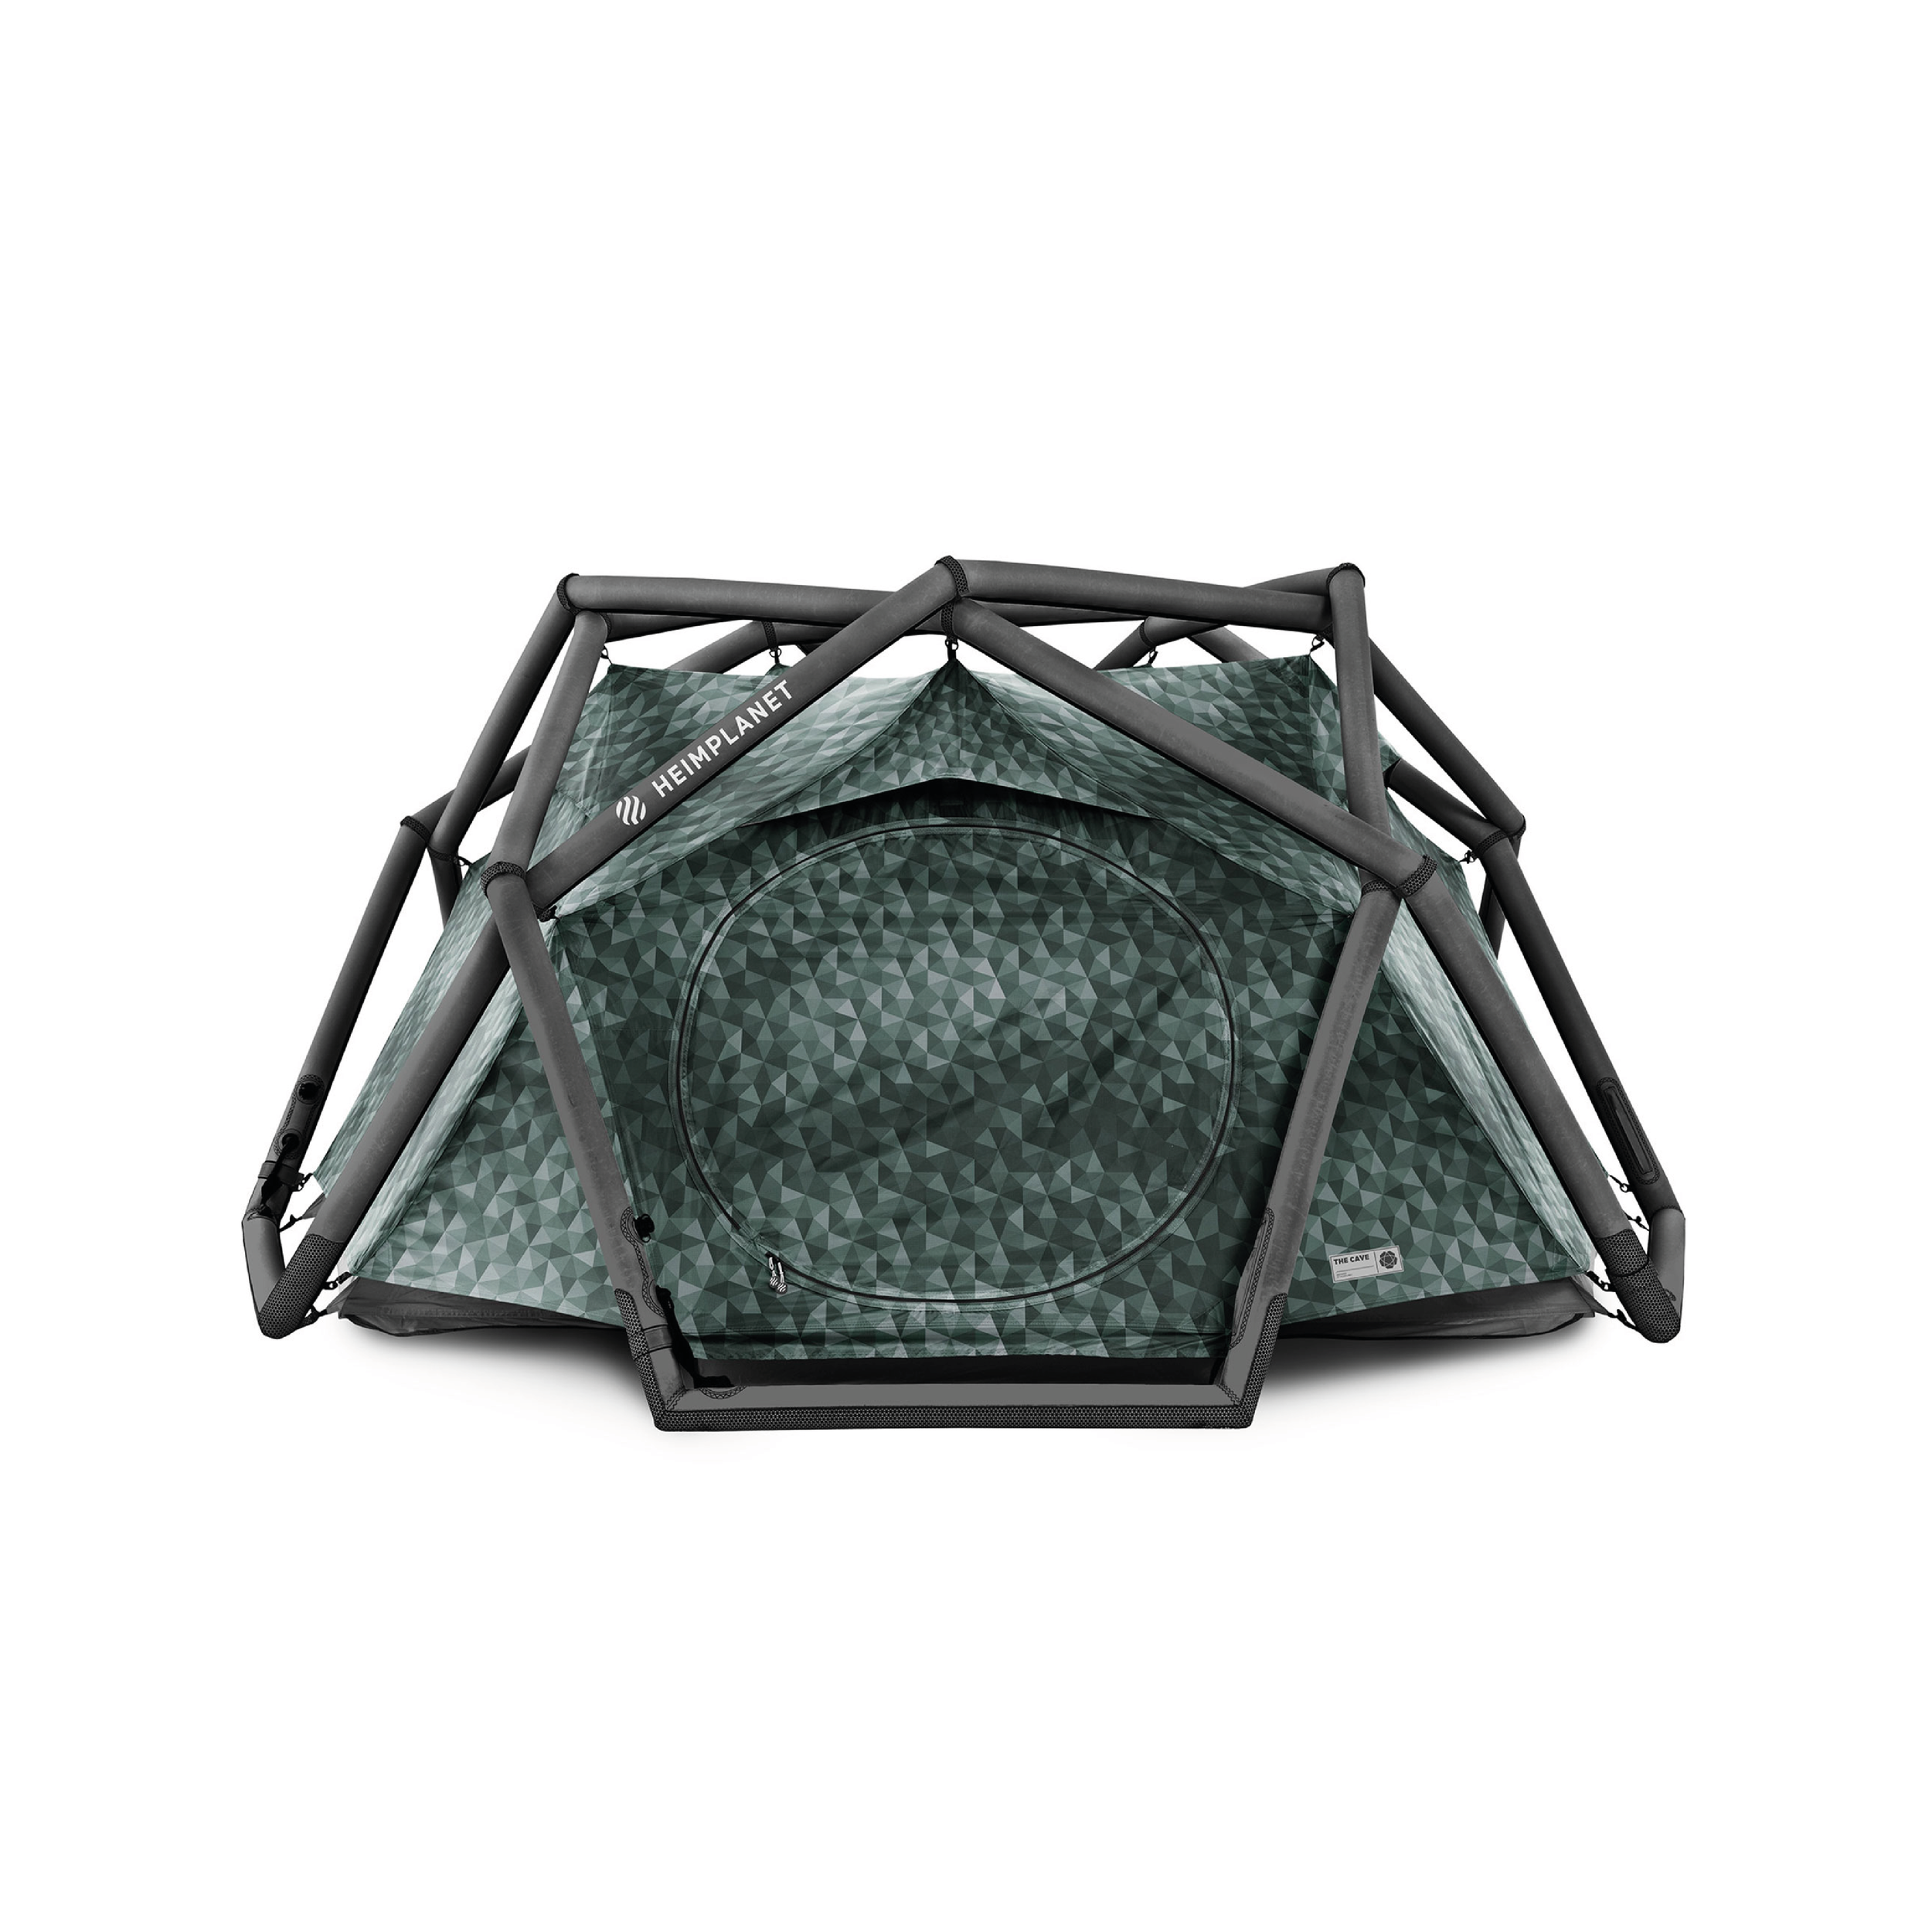 CAVE TENT    By  Heimplanet     The best inflatable tent for the budding explorer who needs a quick set up to bunk down for the night.    SHOP NOW      £420